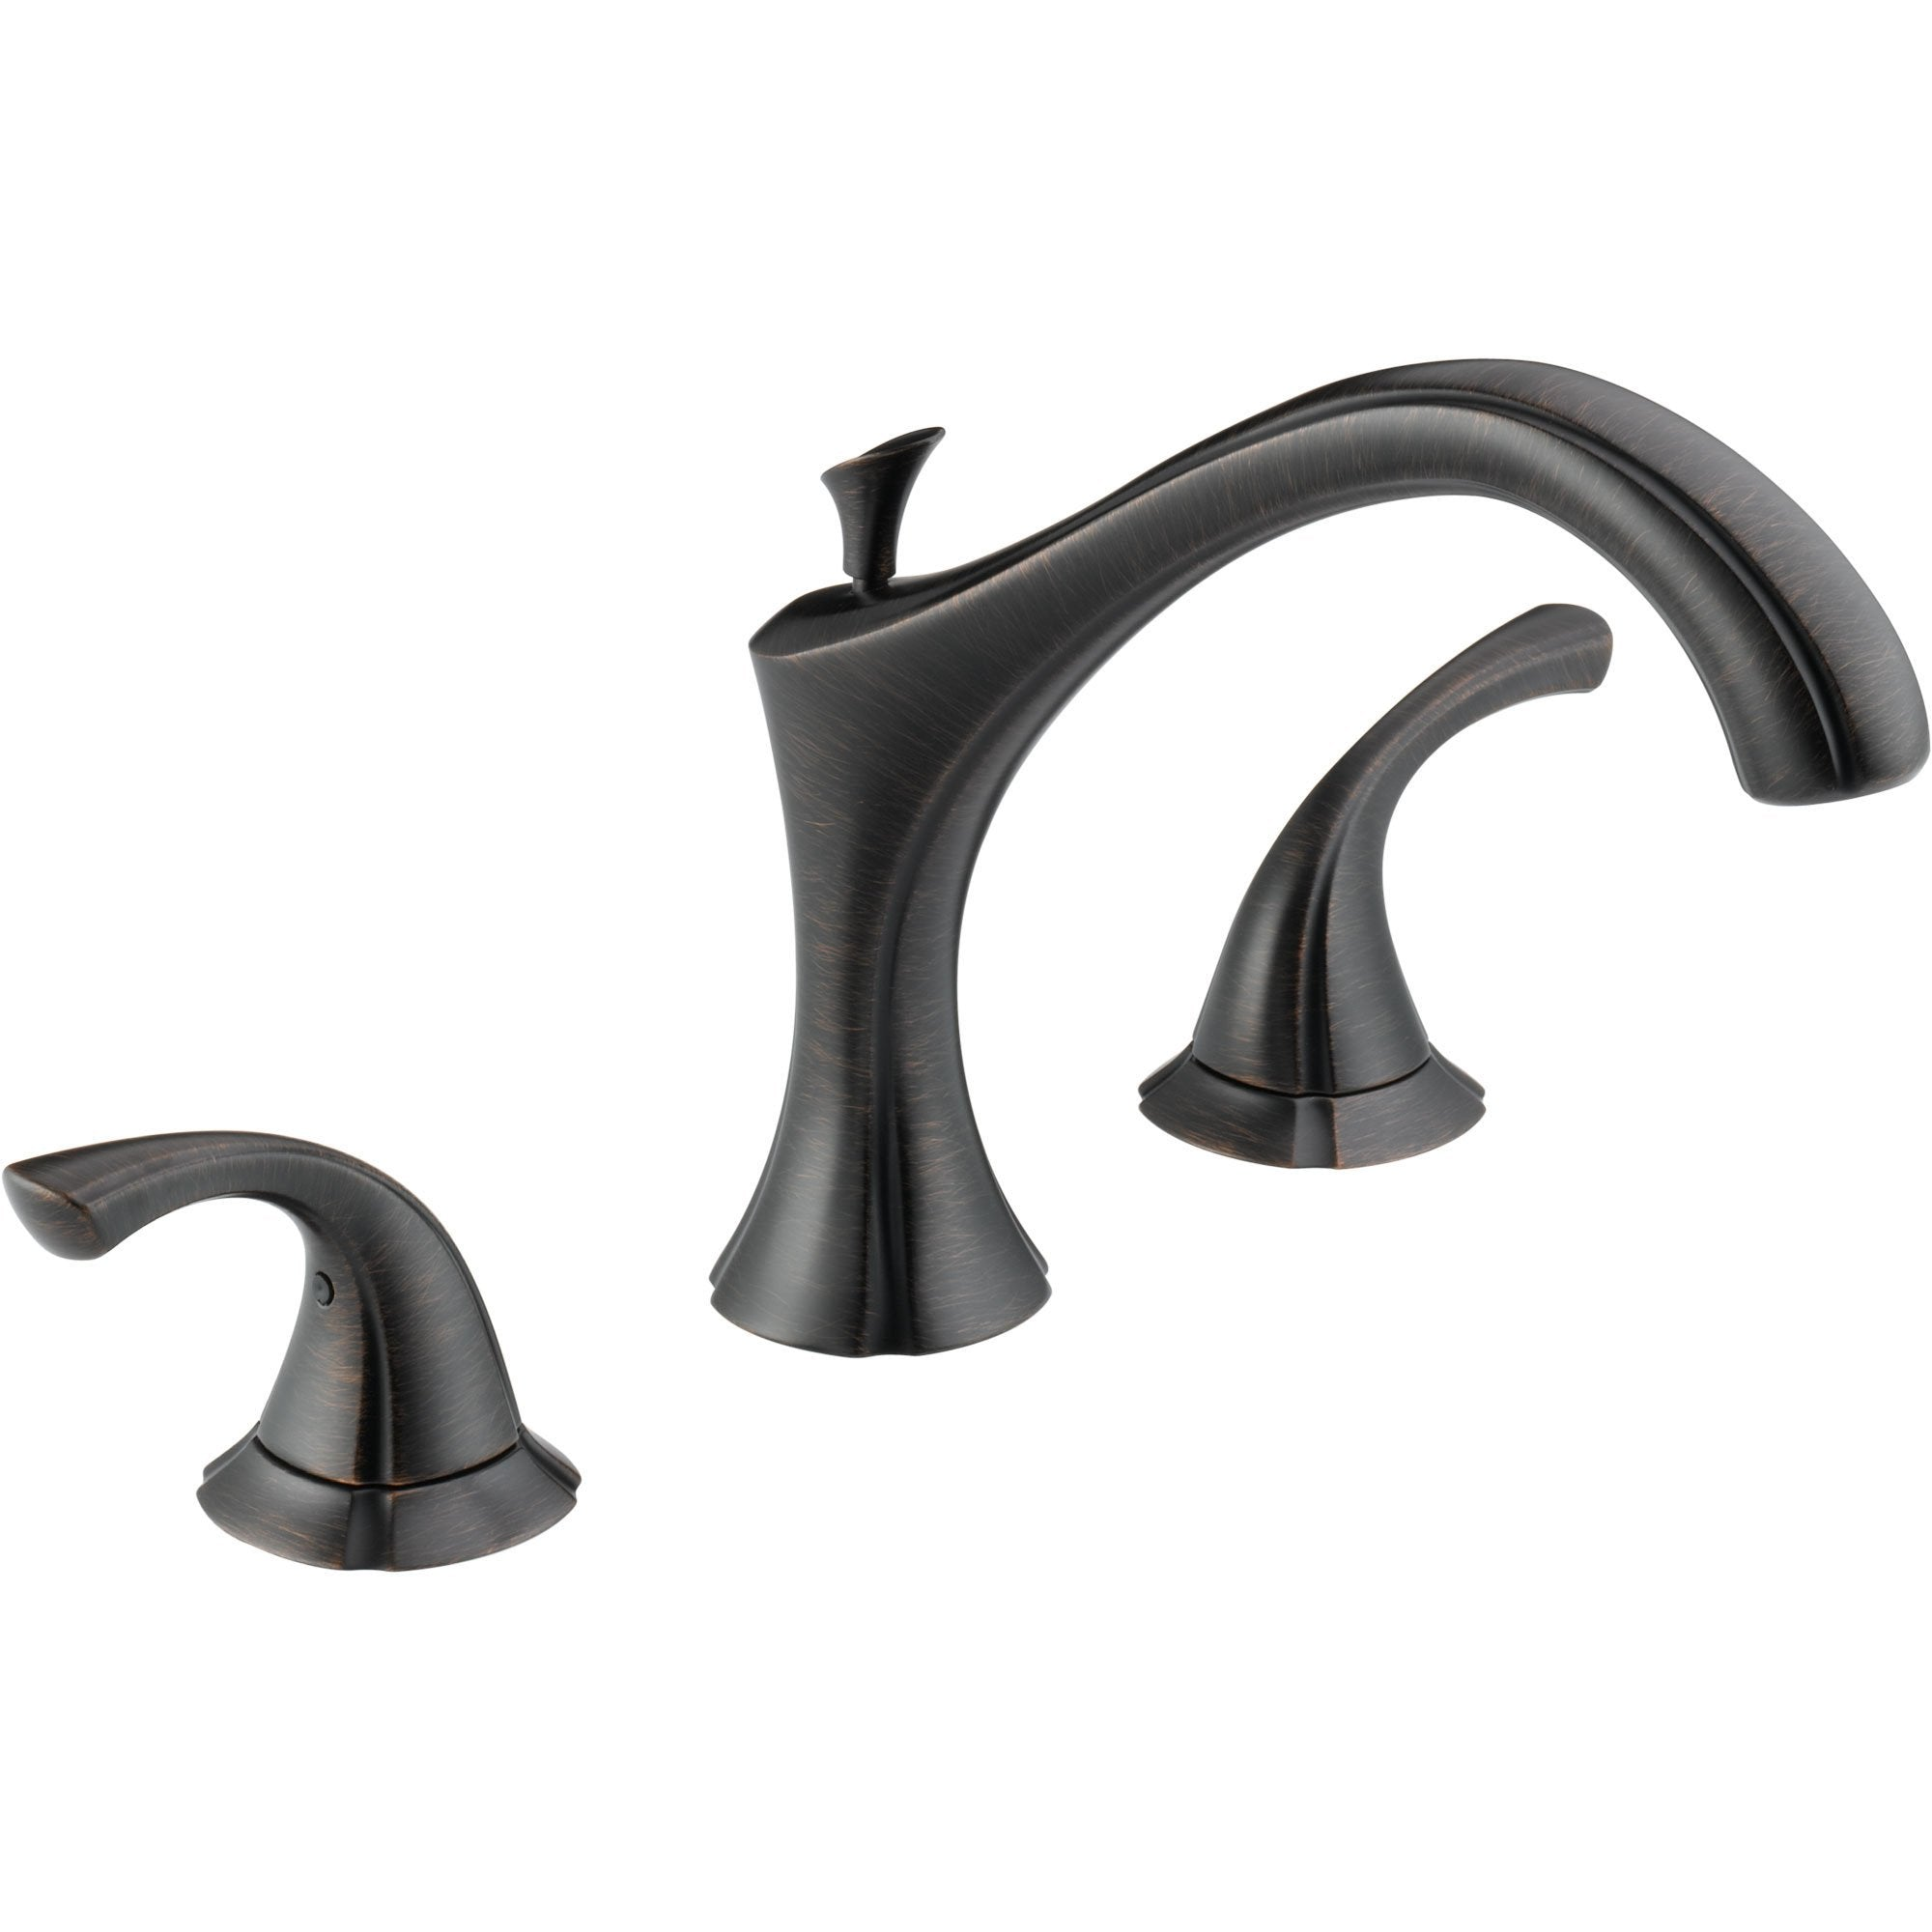 Delta Addison Modern Venetian Bronze Roman Tub Filler Faucet Trim Kit 476455